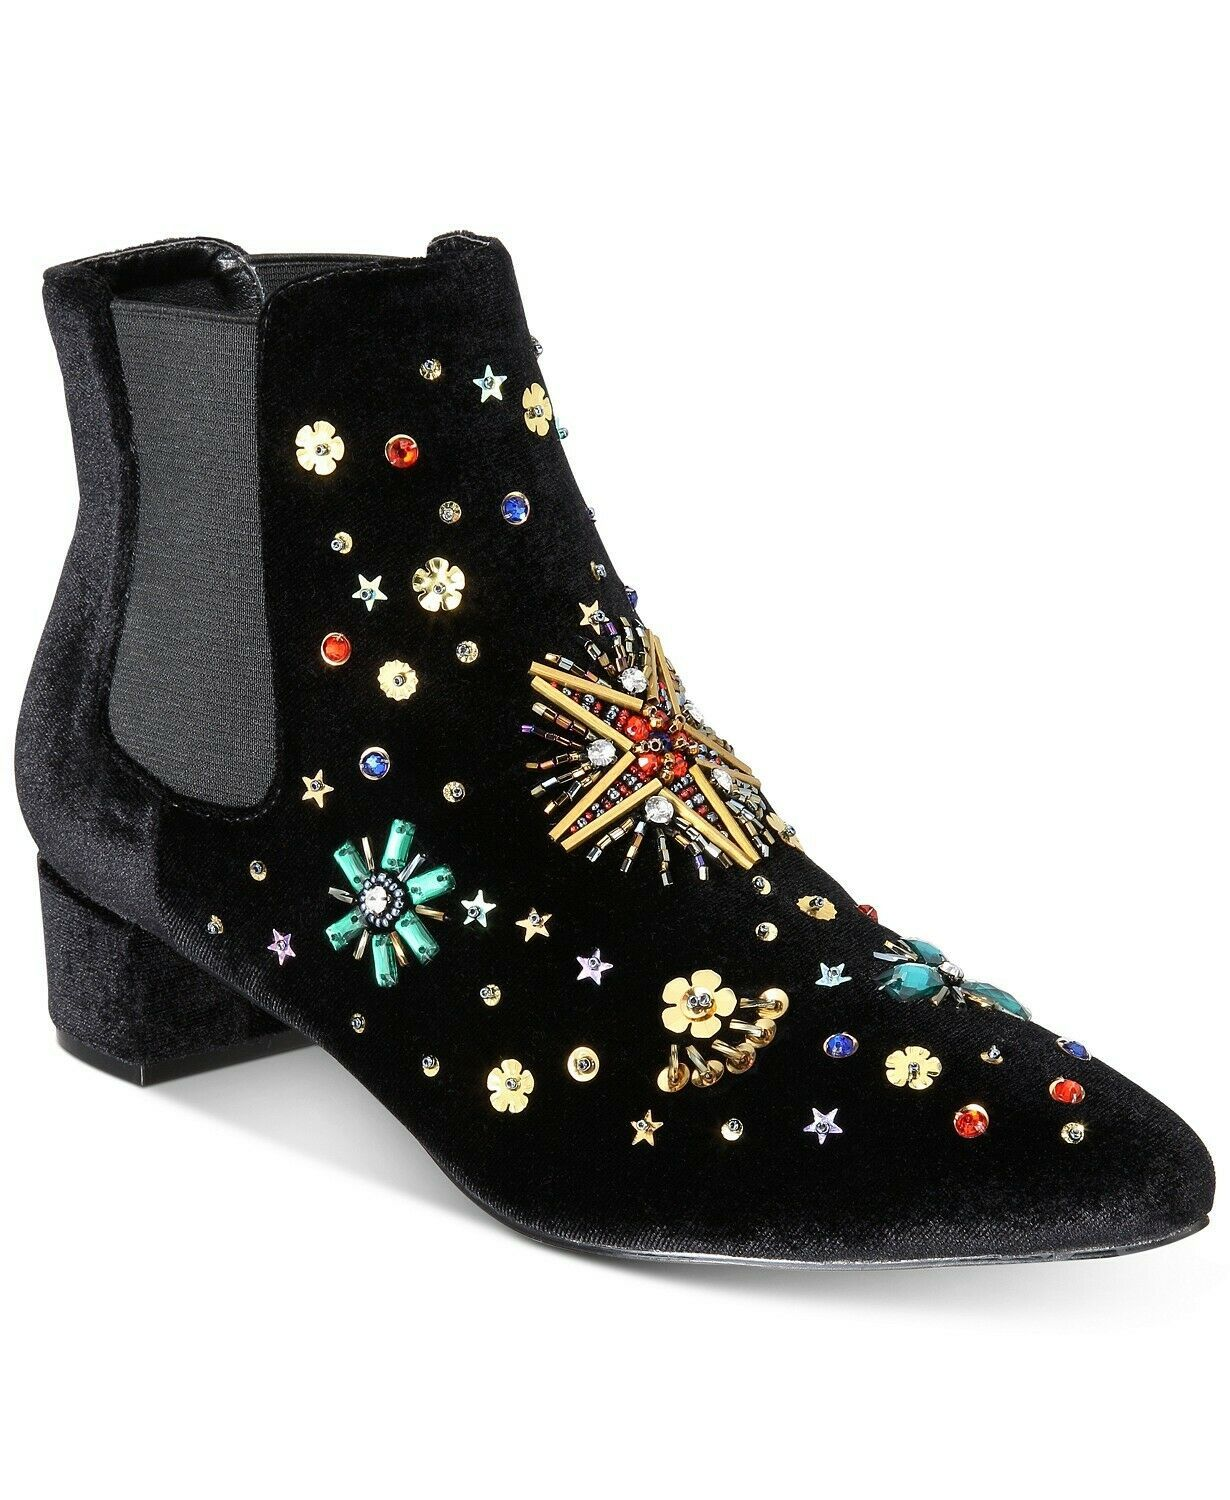 Primary image for Betsey Johnson JAX Bootie Black Velvet, Size 5